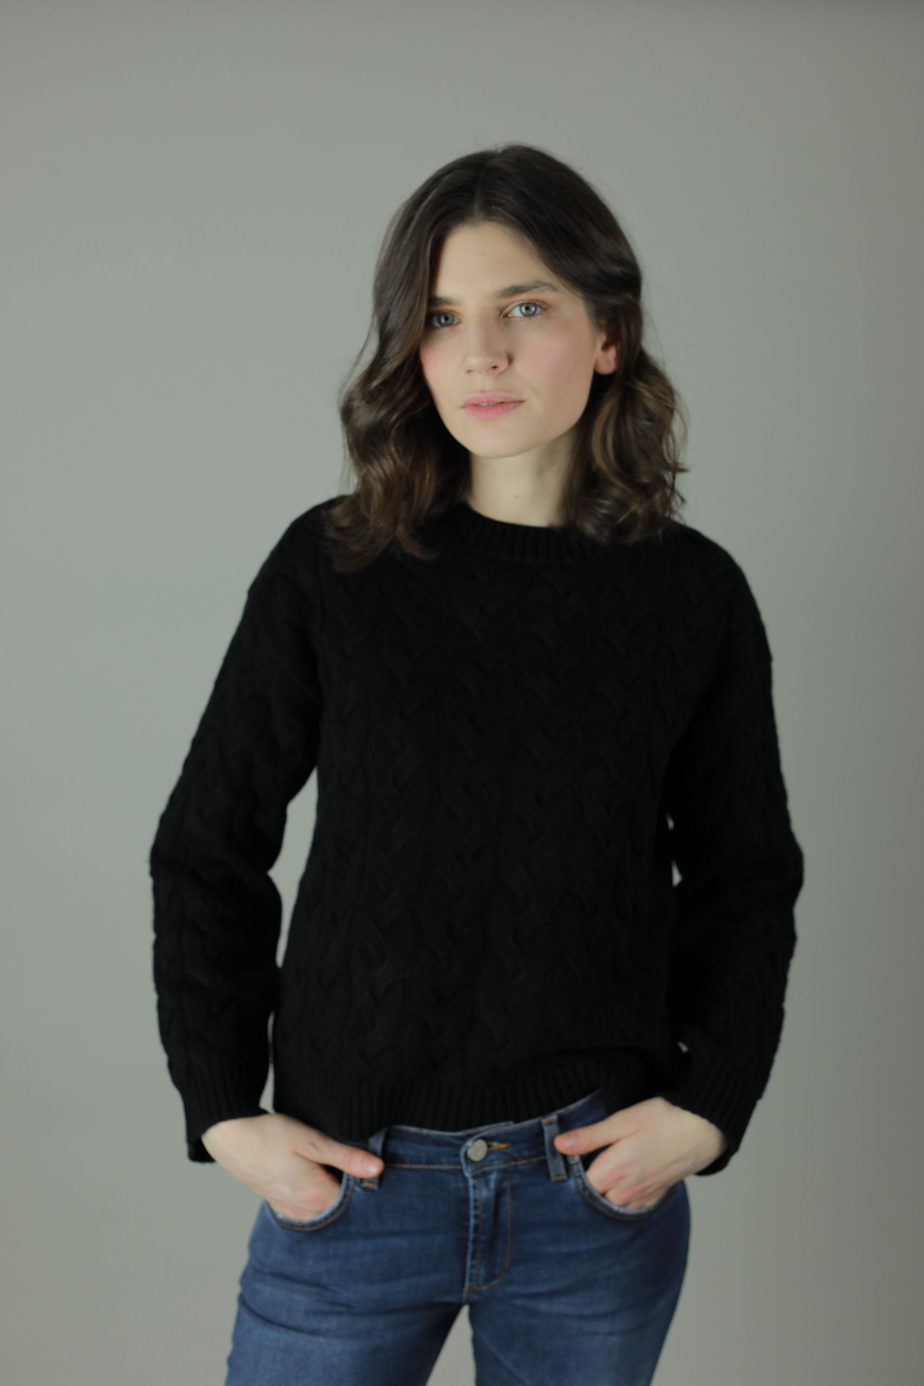 The 100% cashmere Cable-Knit Lana sweater is the luxurious feel you need against your skin this year. Luxuriously woven to give you the perfect look and feel of luxury offered in three different colours with an option of straight edge or scallop edge in our quality cashmere collection. Front view.